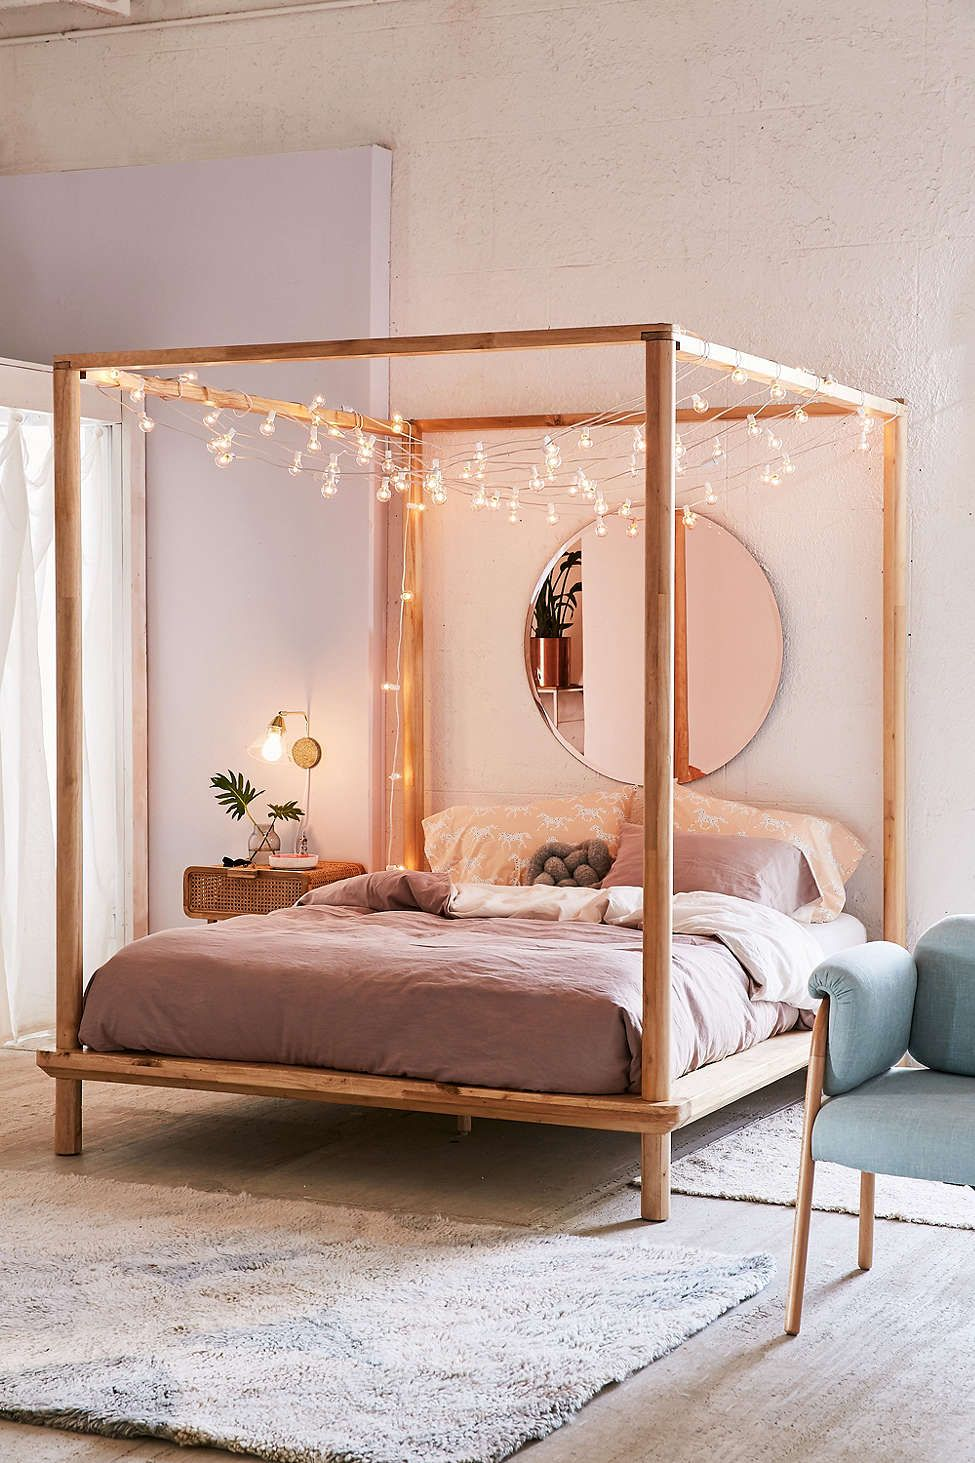 Luxury Bedrooms With King Sizecanopy Beds With Lanterns